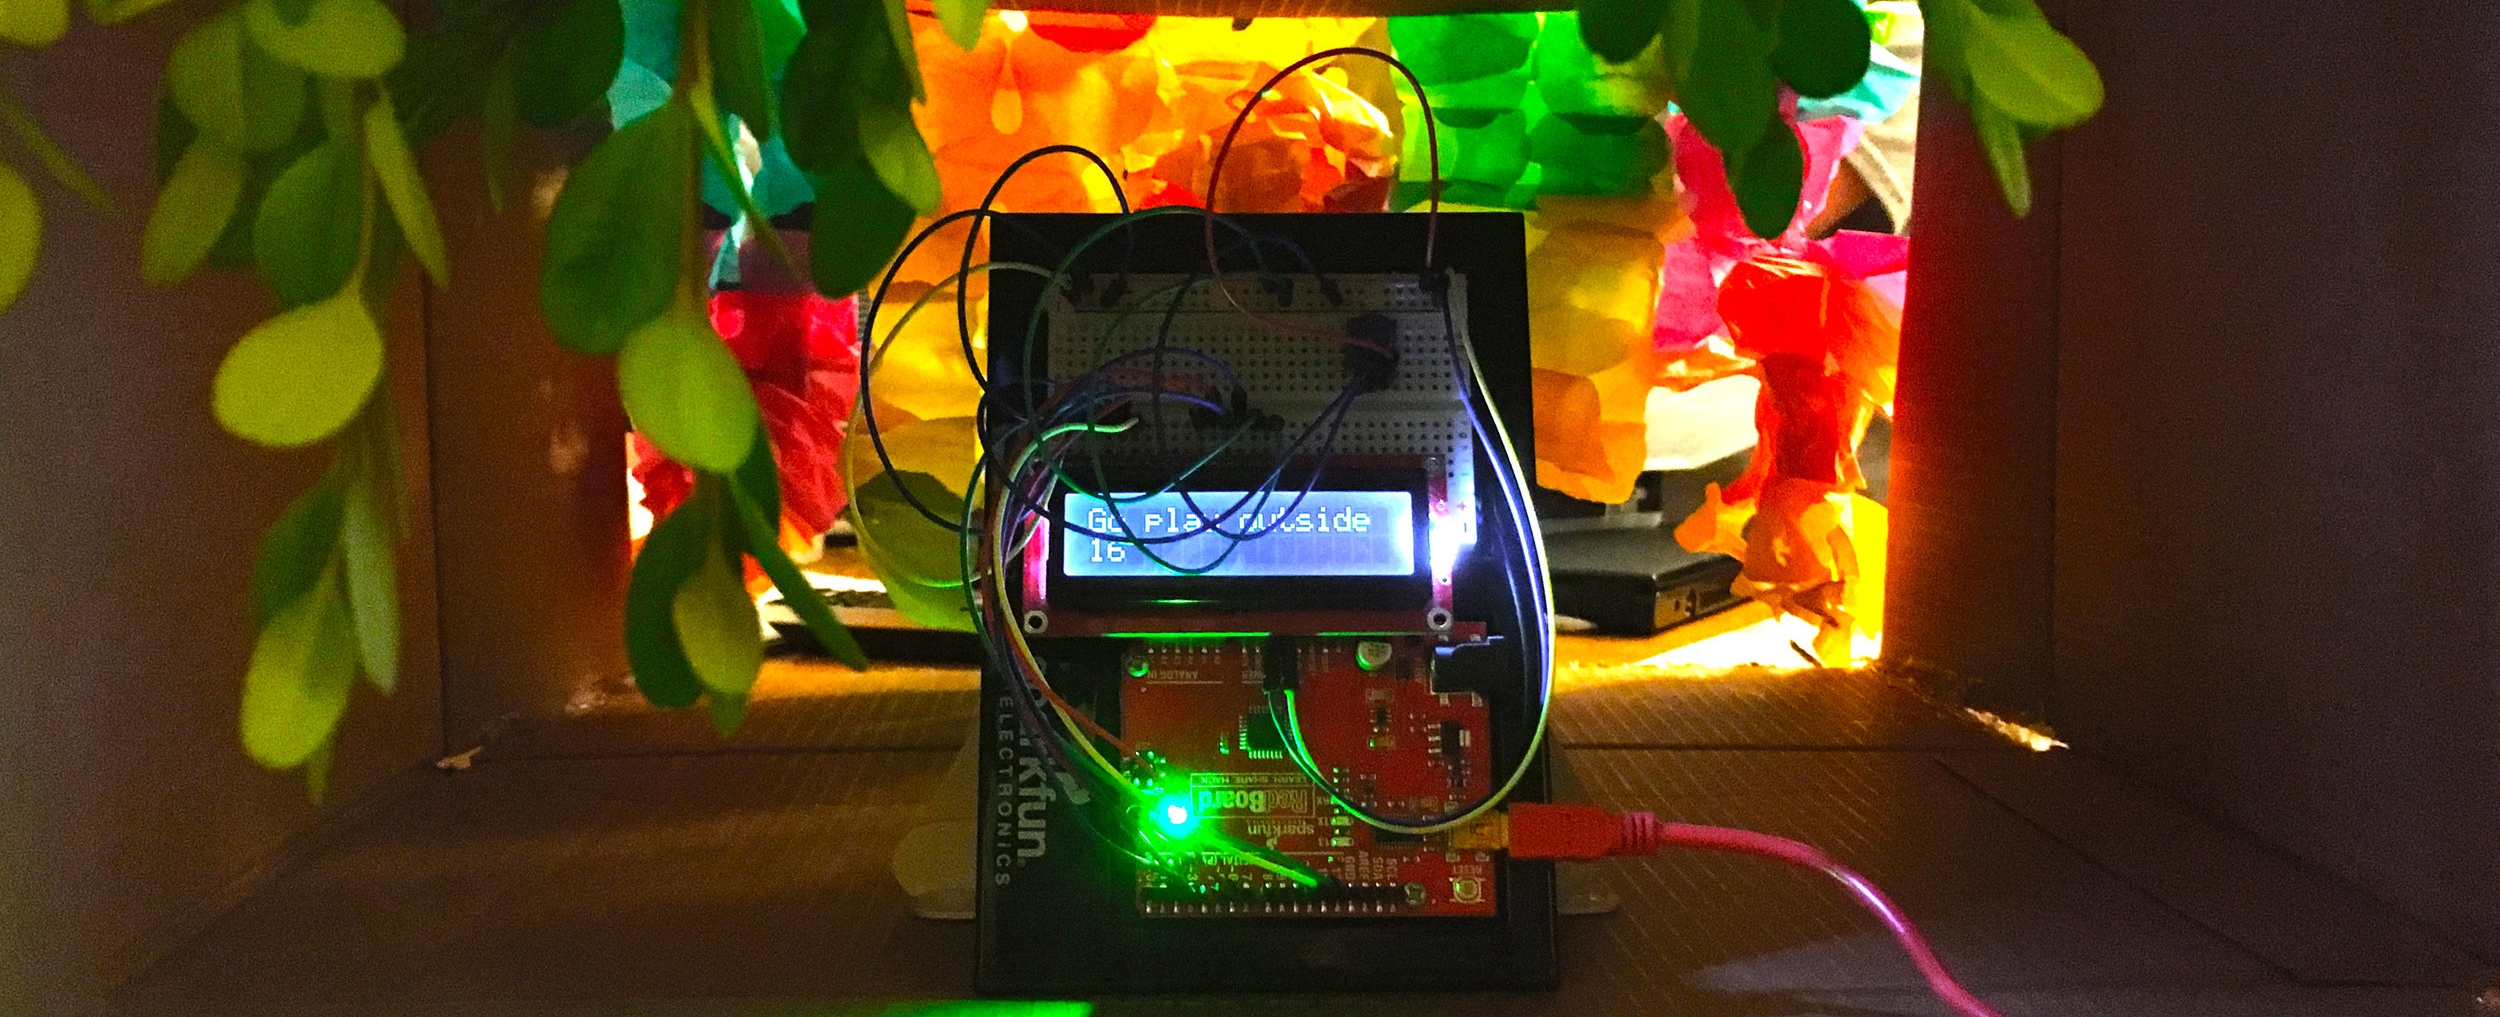 Arduino sculpture created by a student, spring 2017